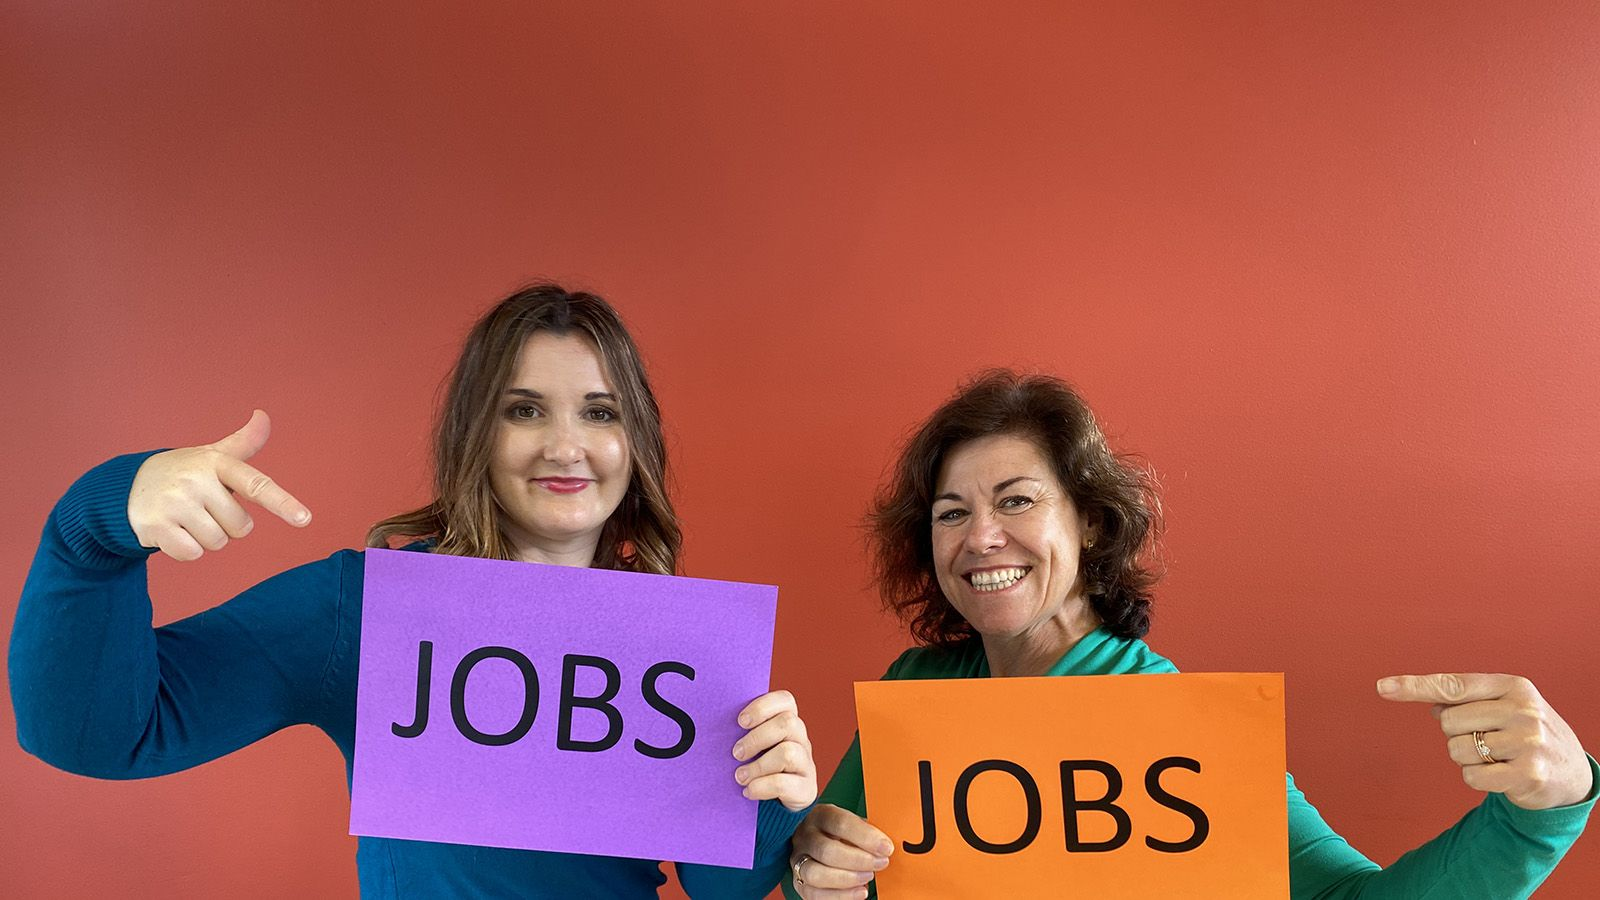 Two Job Shop staff members each holding and pointing to a piece of paper that reads 'JOBS' banner image